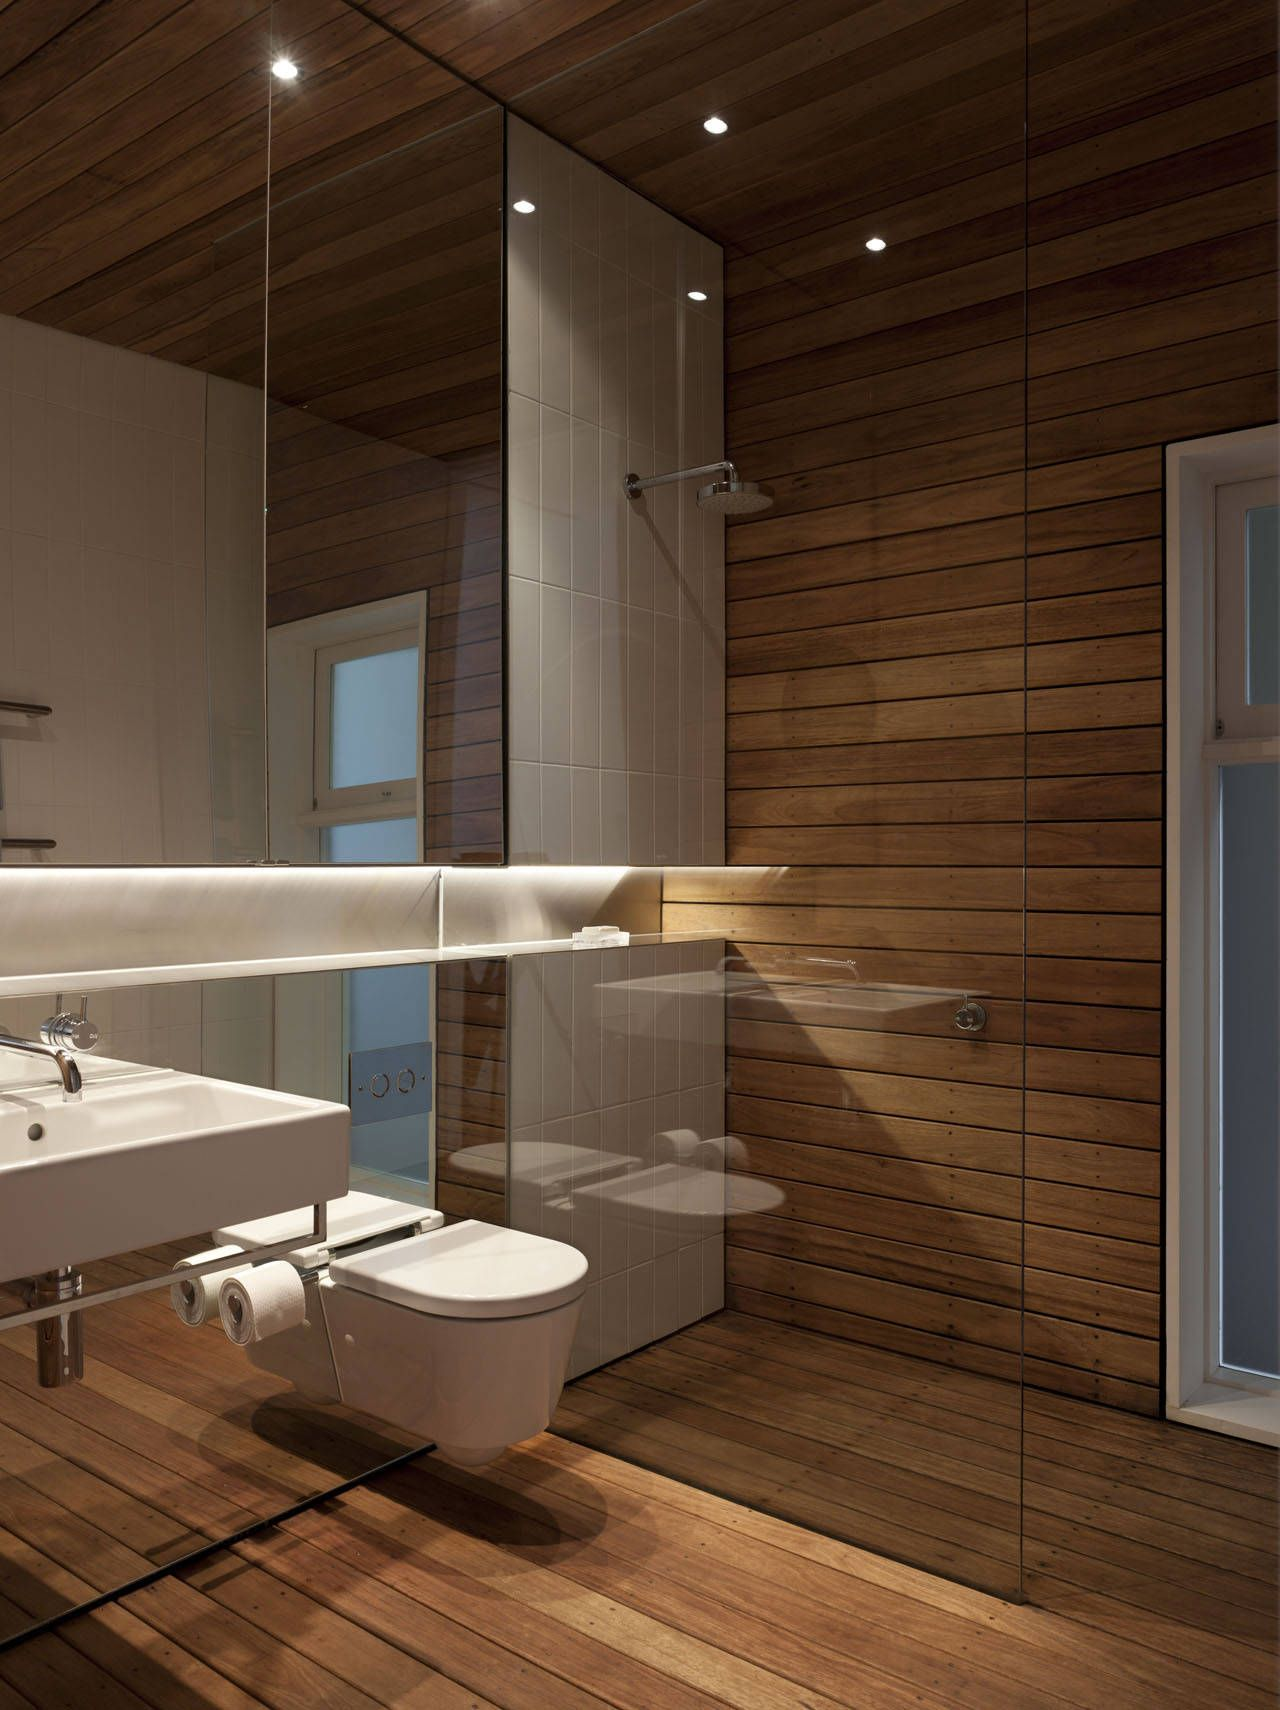 Skirt Rock House MCK Architects Bath Design Modern Bathroom Design Contemporary Bathrooms